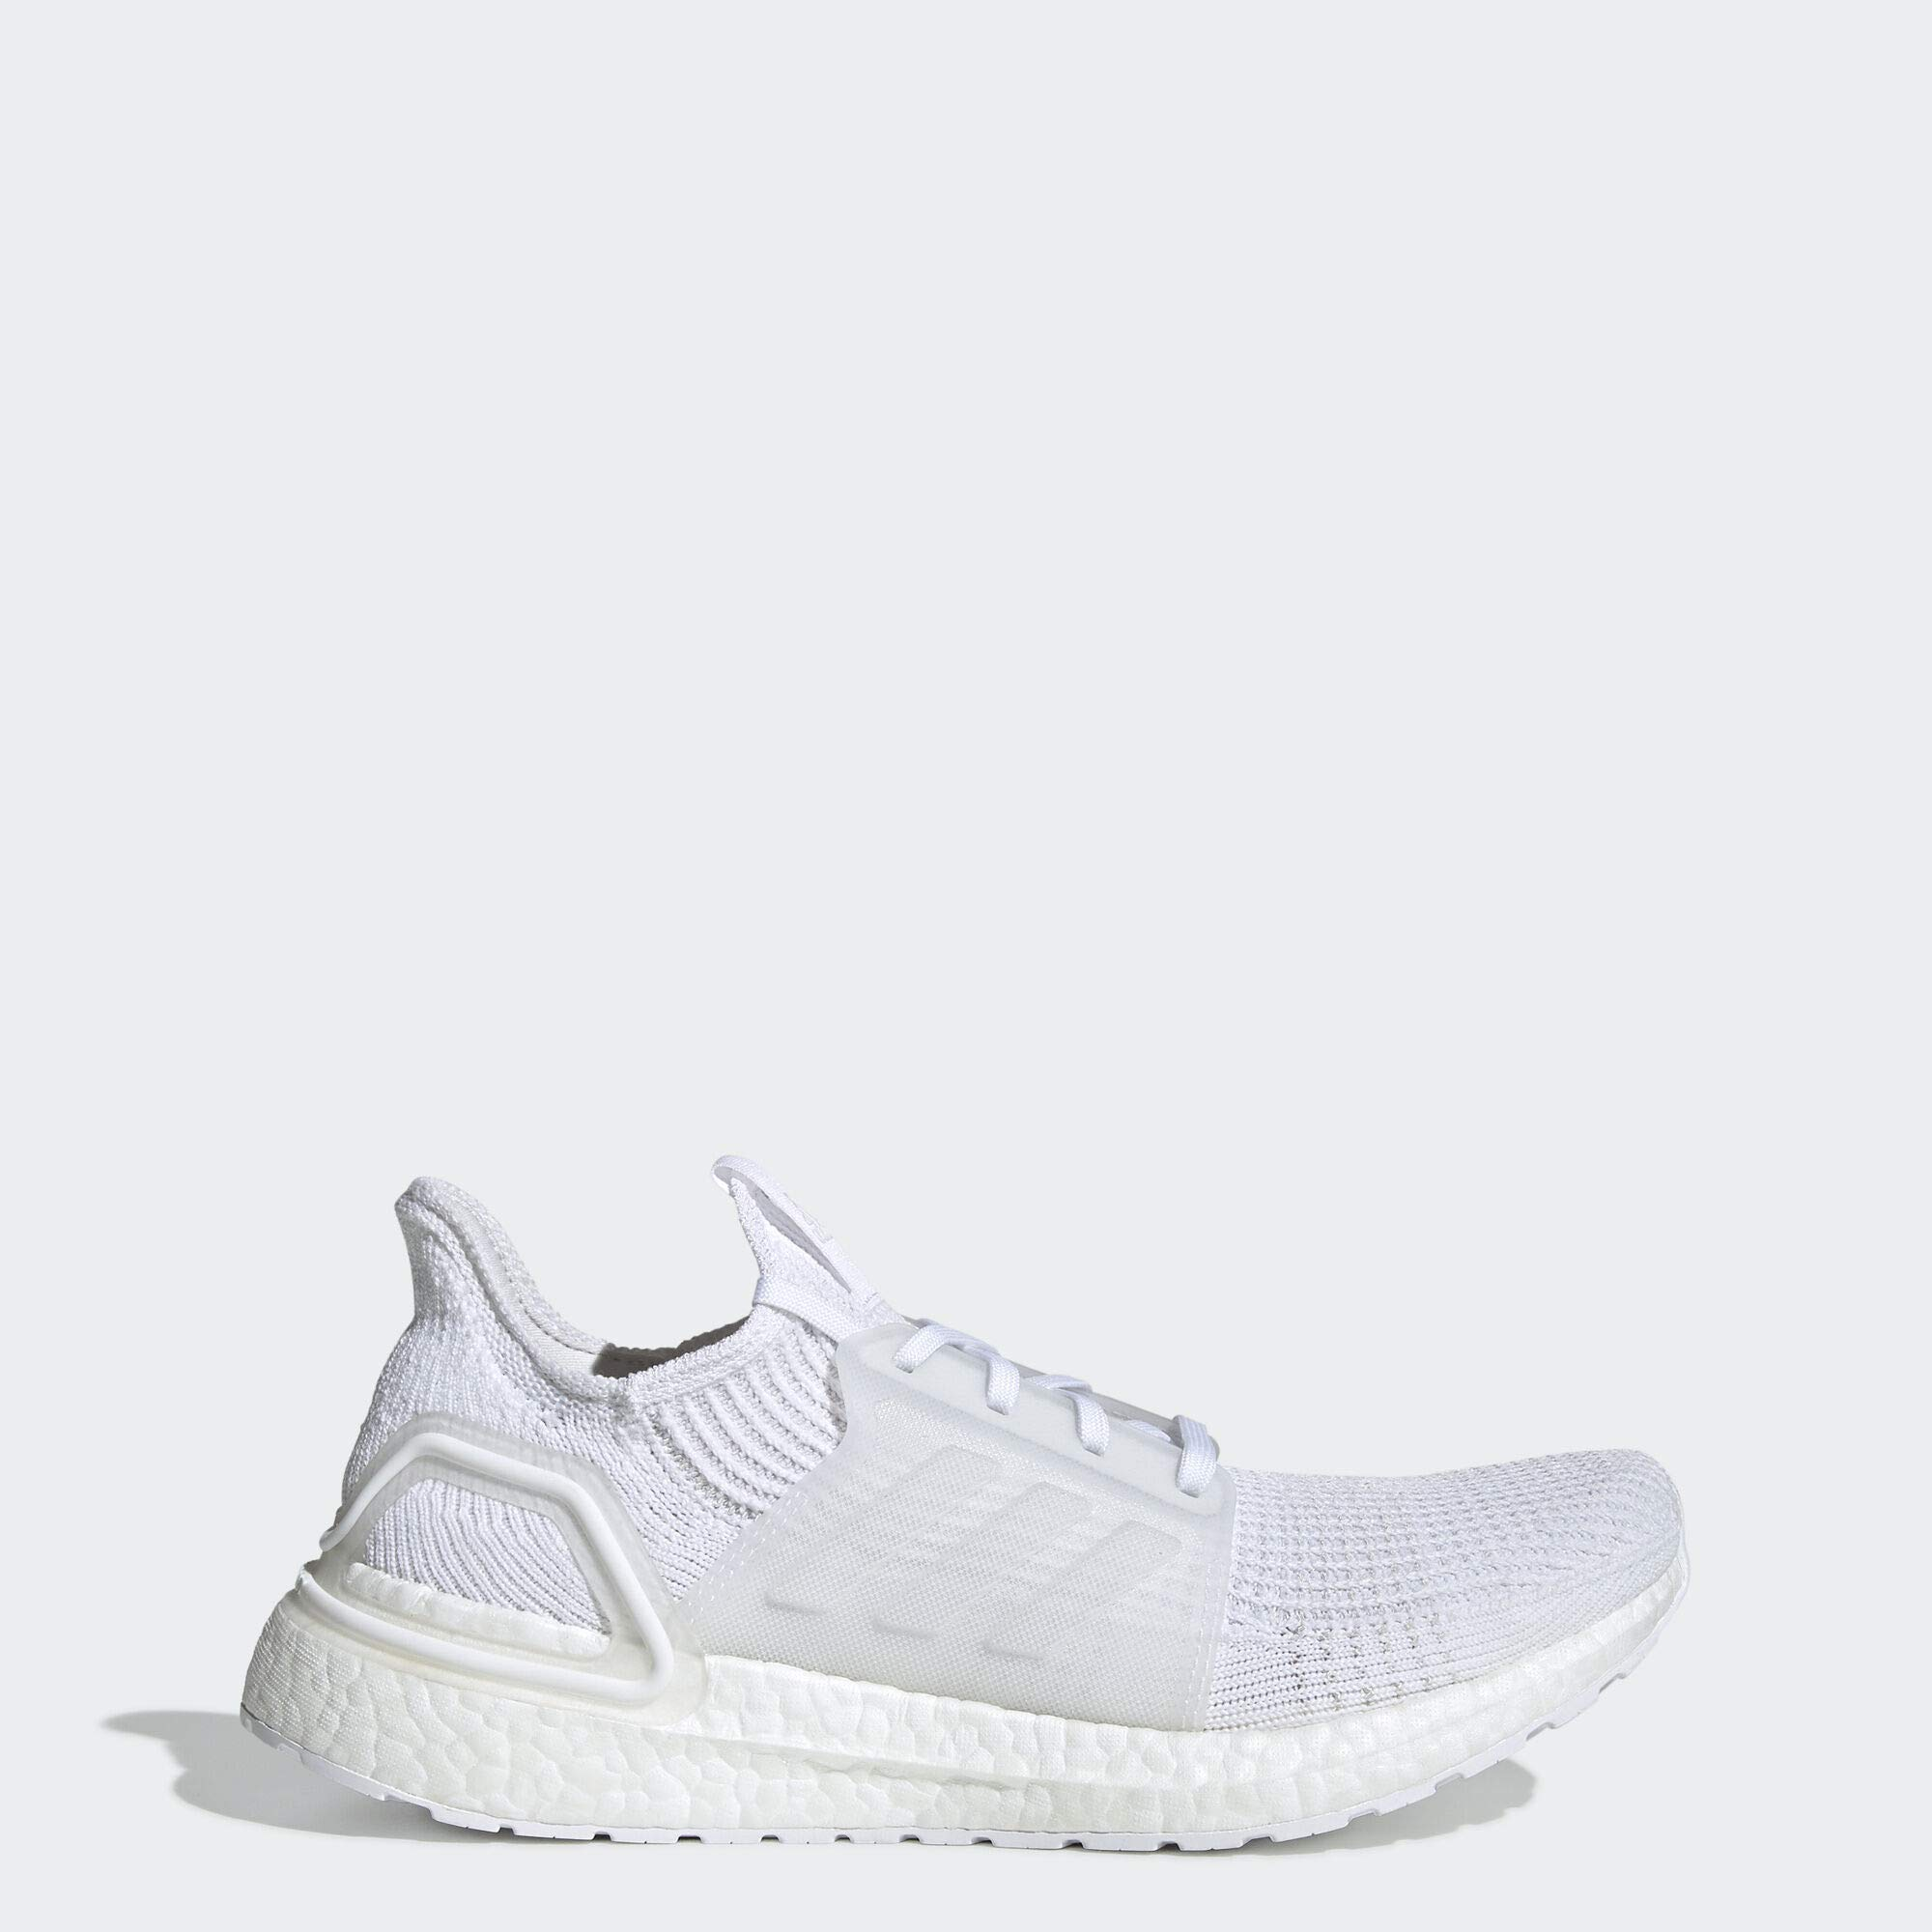 adidas Ultraboost 19 Shoes Men's, White, Size 8.5 by adidas